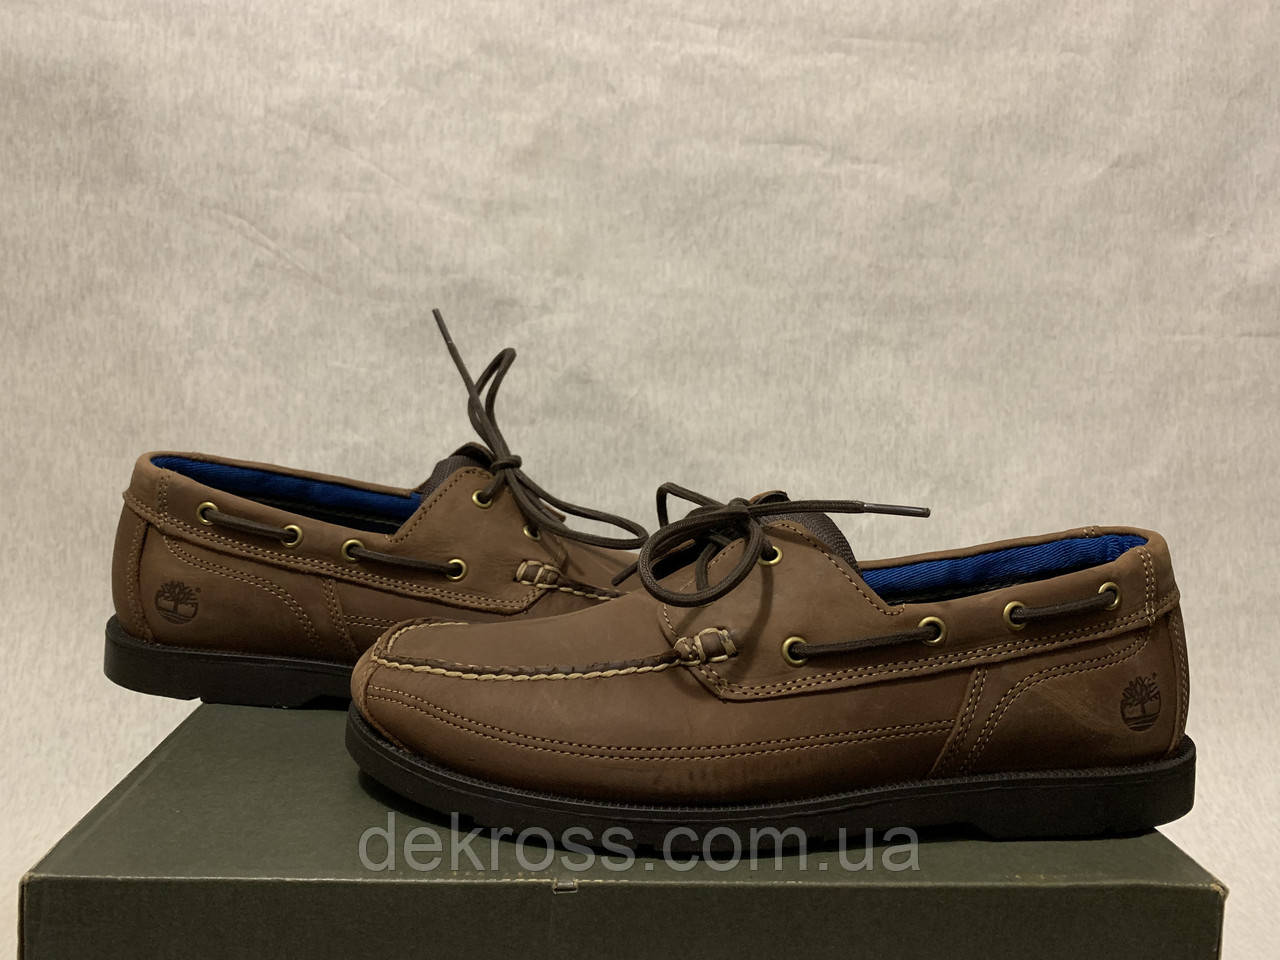 Топсайдеры Timberland Piper Cove FG Boat Loafers (45) Оригинал TB0A1N51